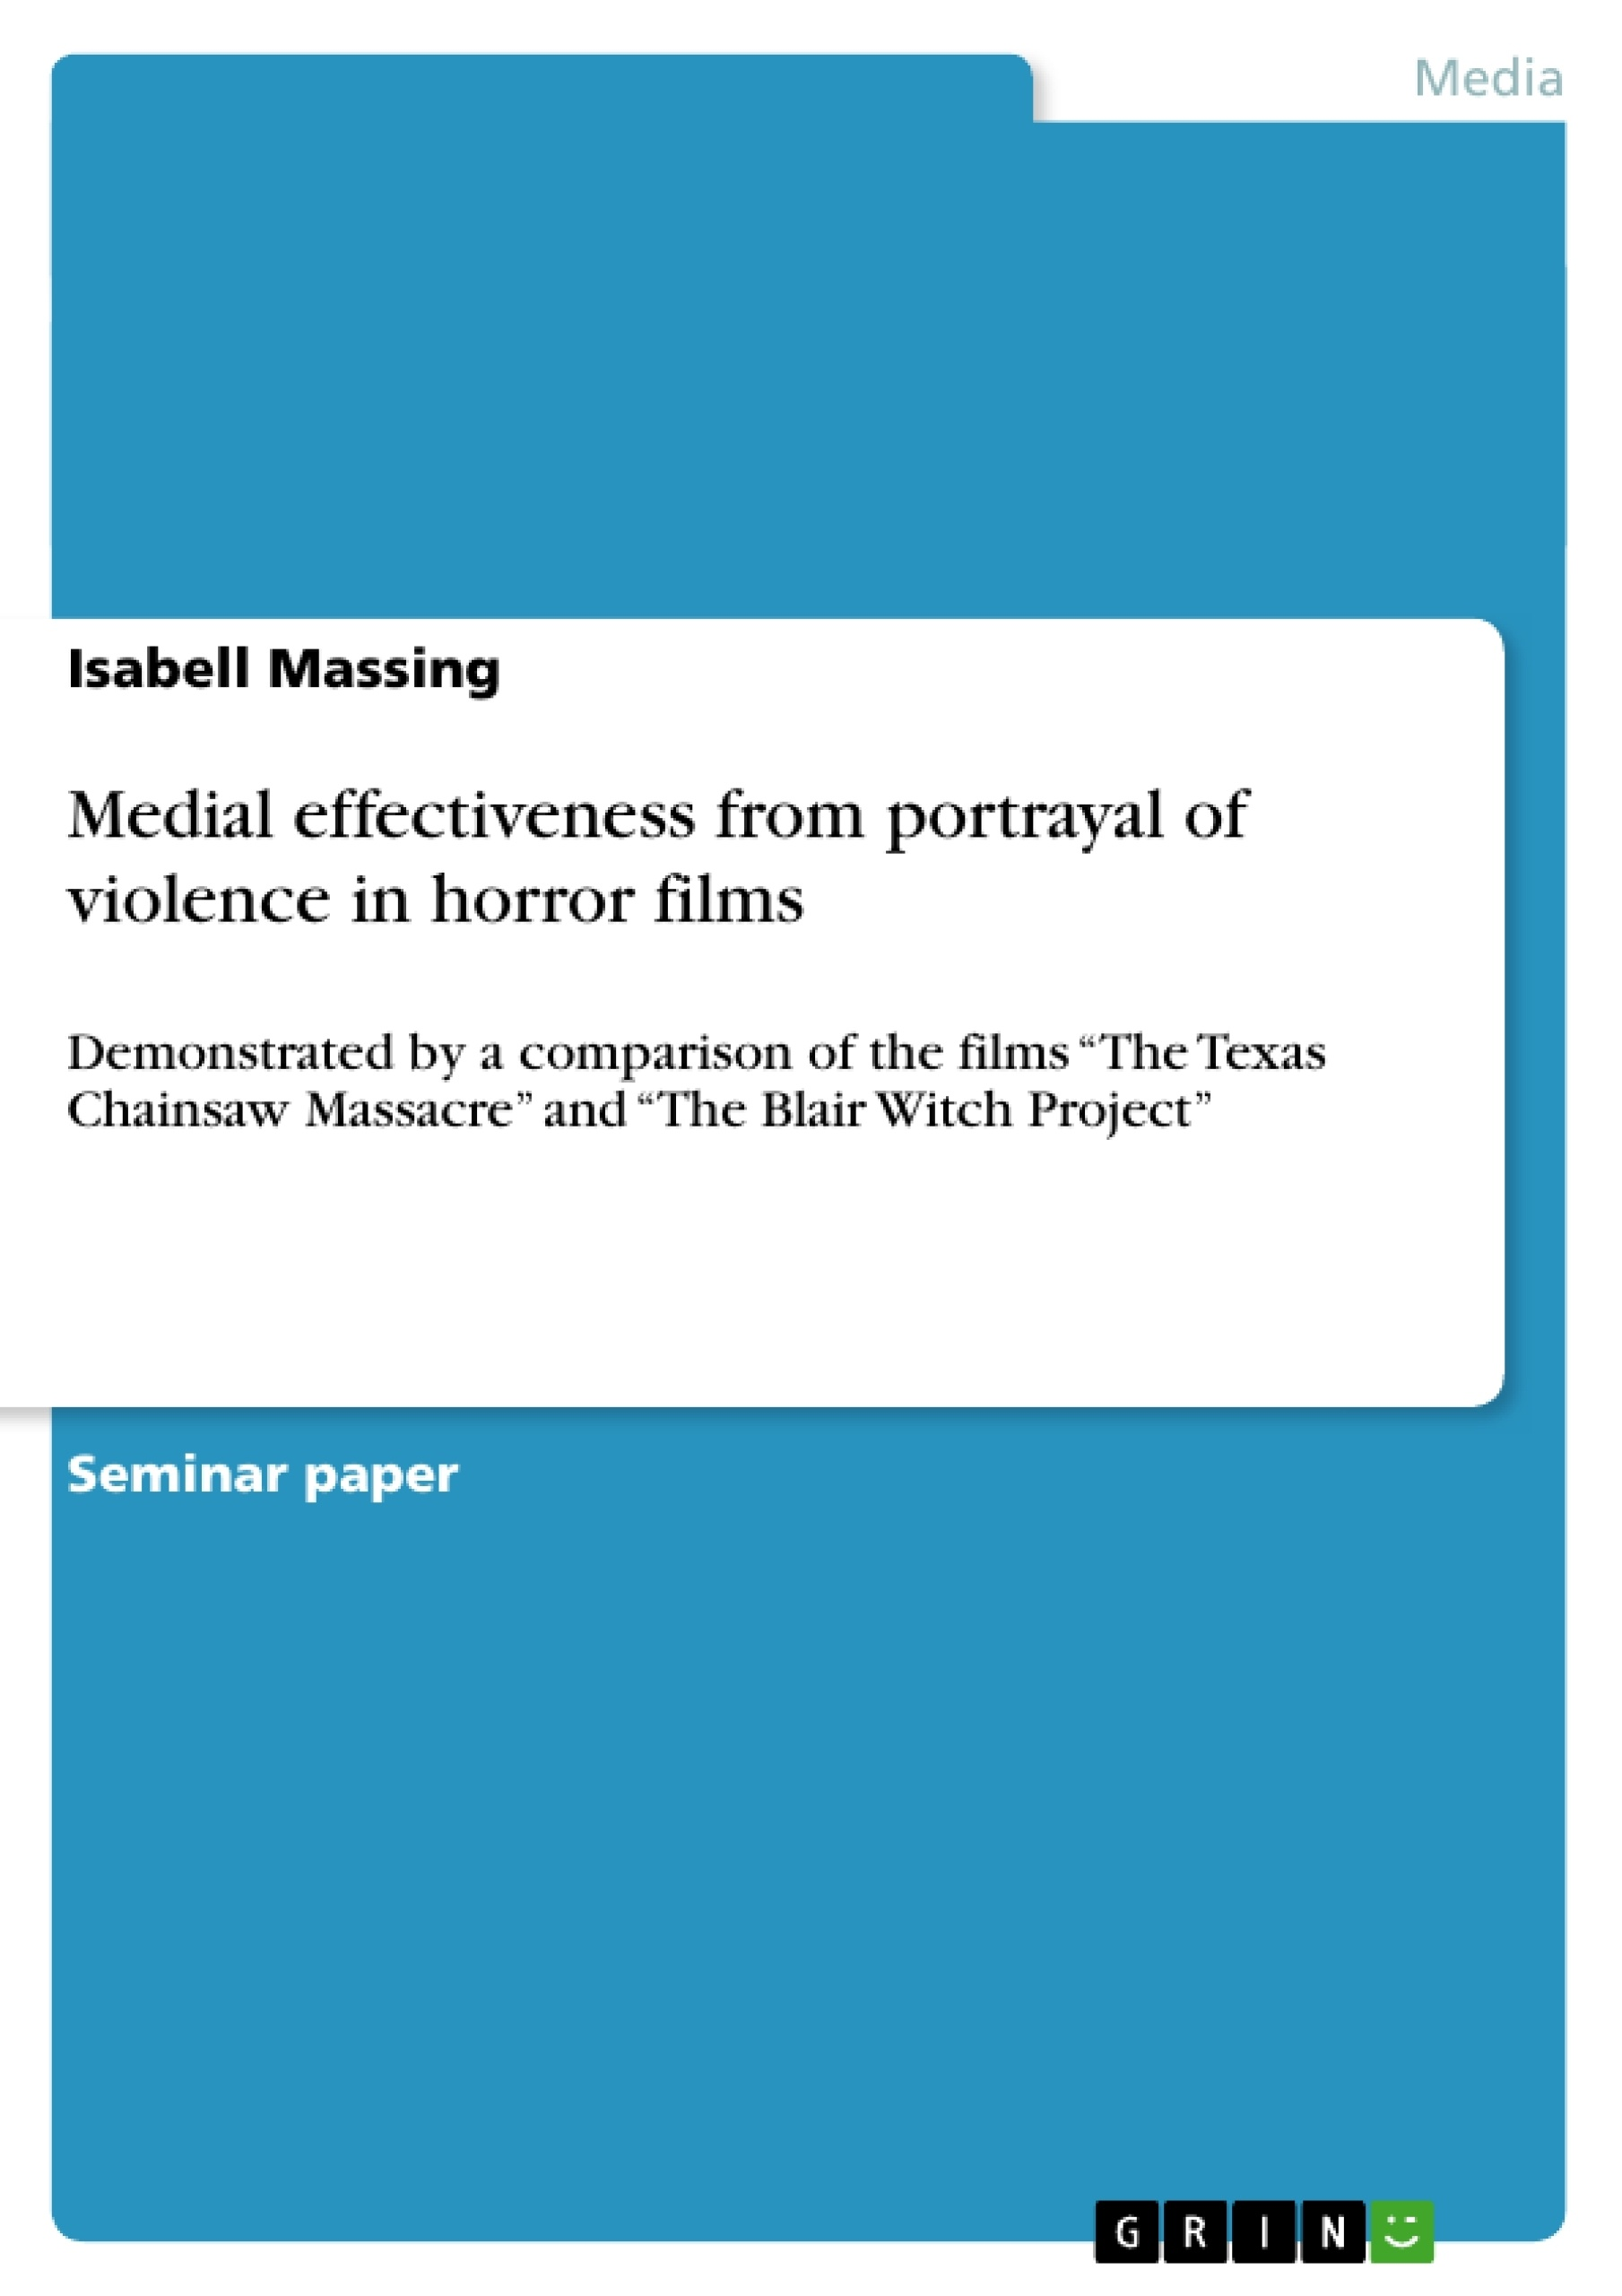 Title: Medial effectiveness from portrayal of violence in horror films